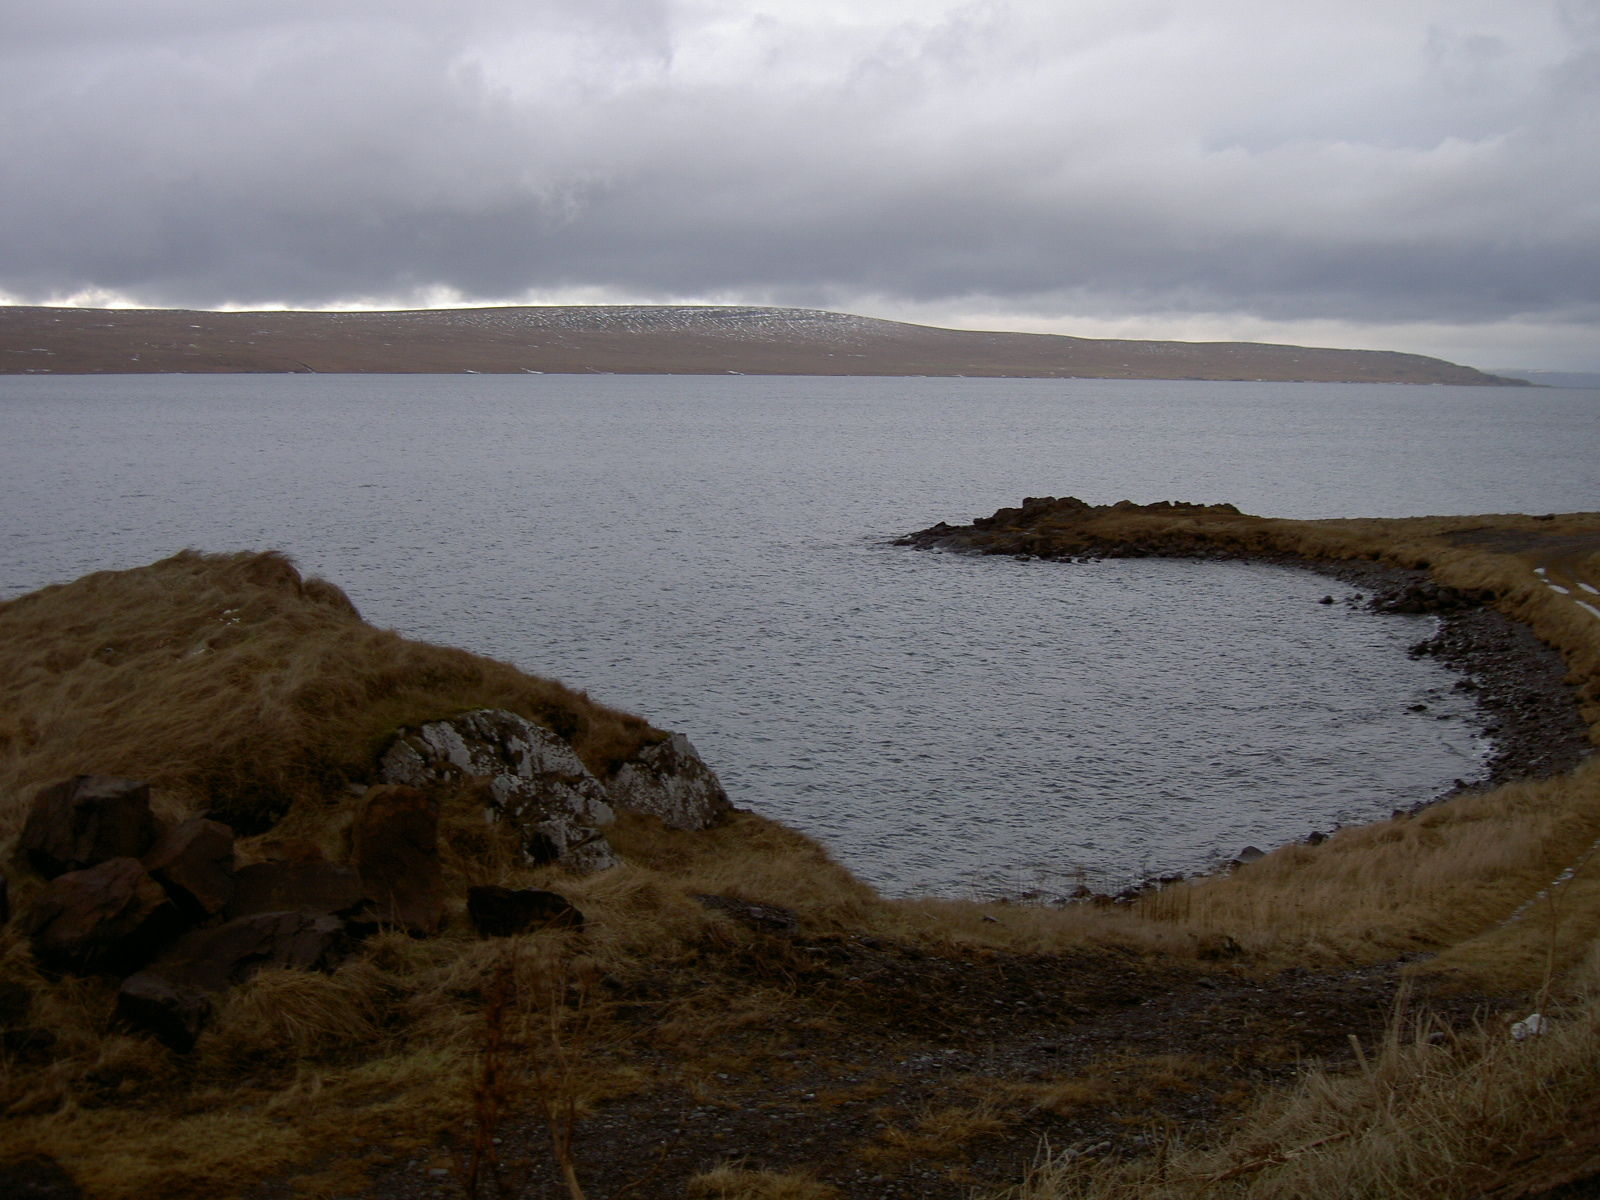 View of the sea from Hvammstangi (purpose of page is to display an image)